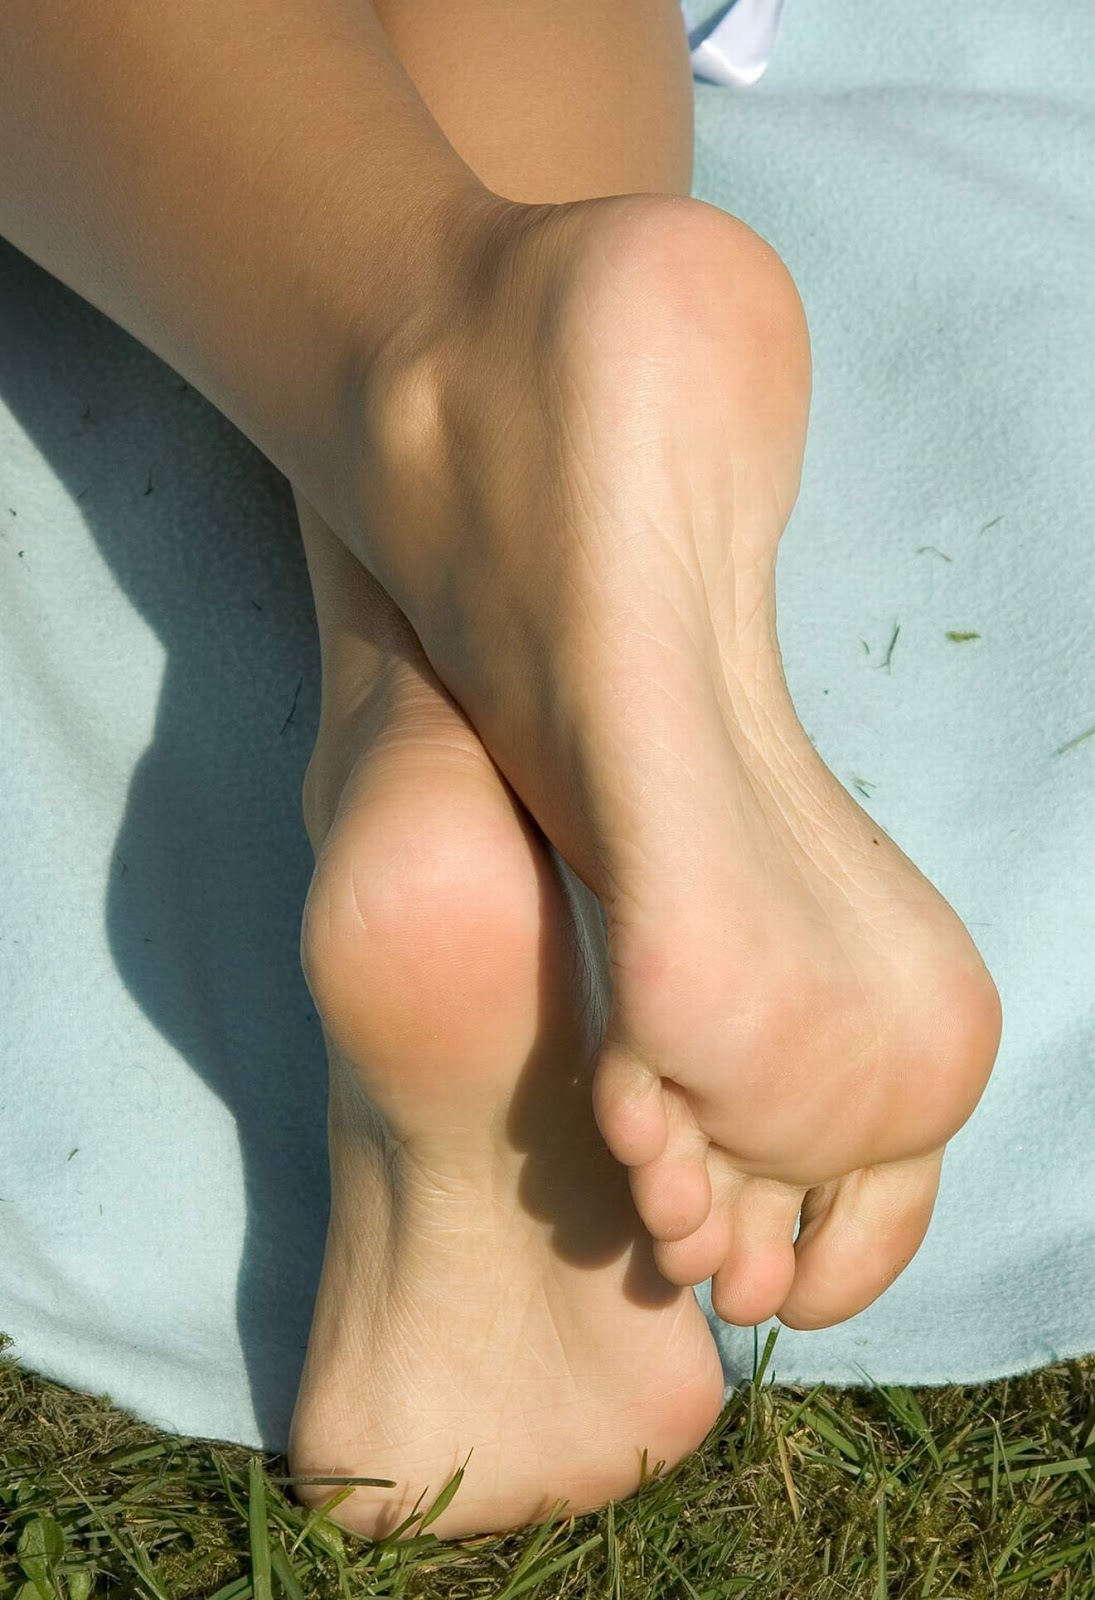 Ethnic foot fetish